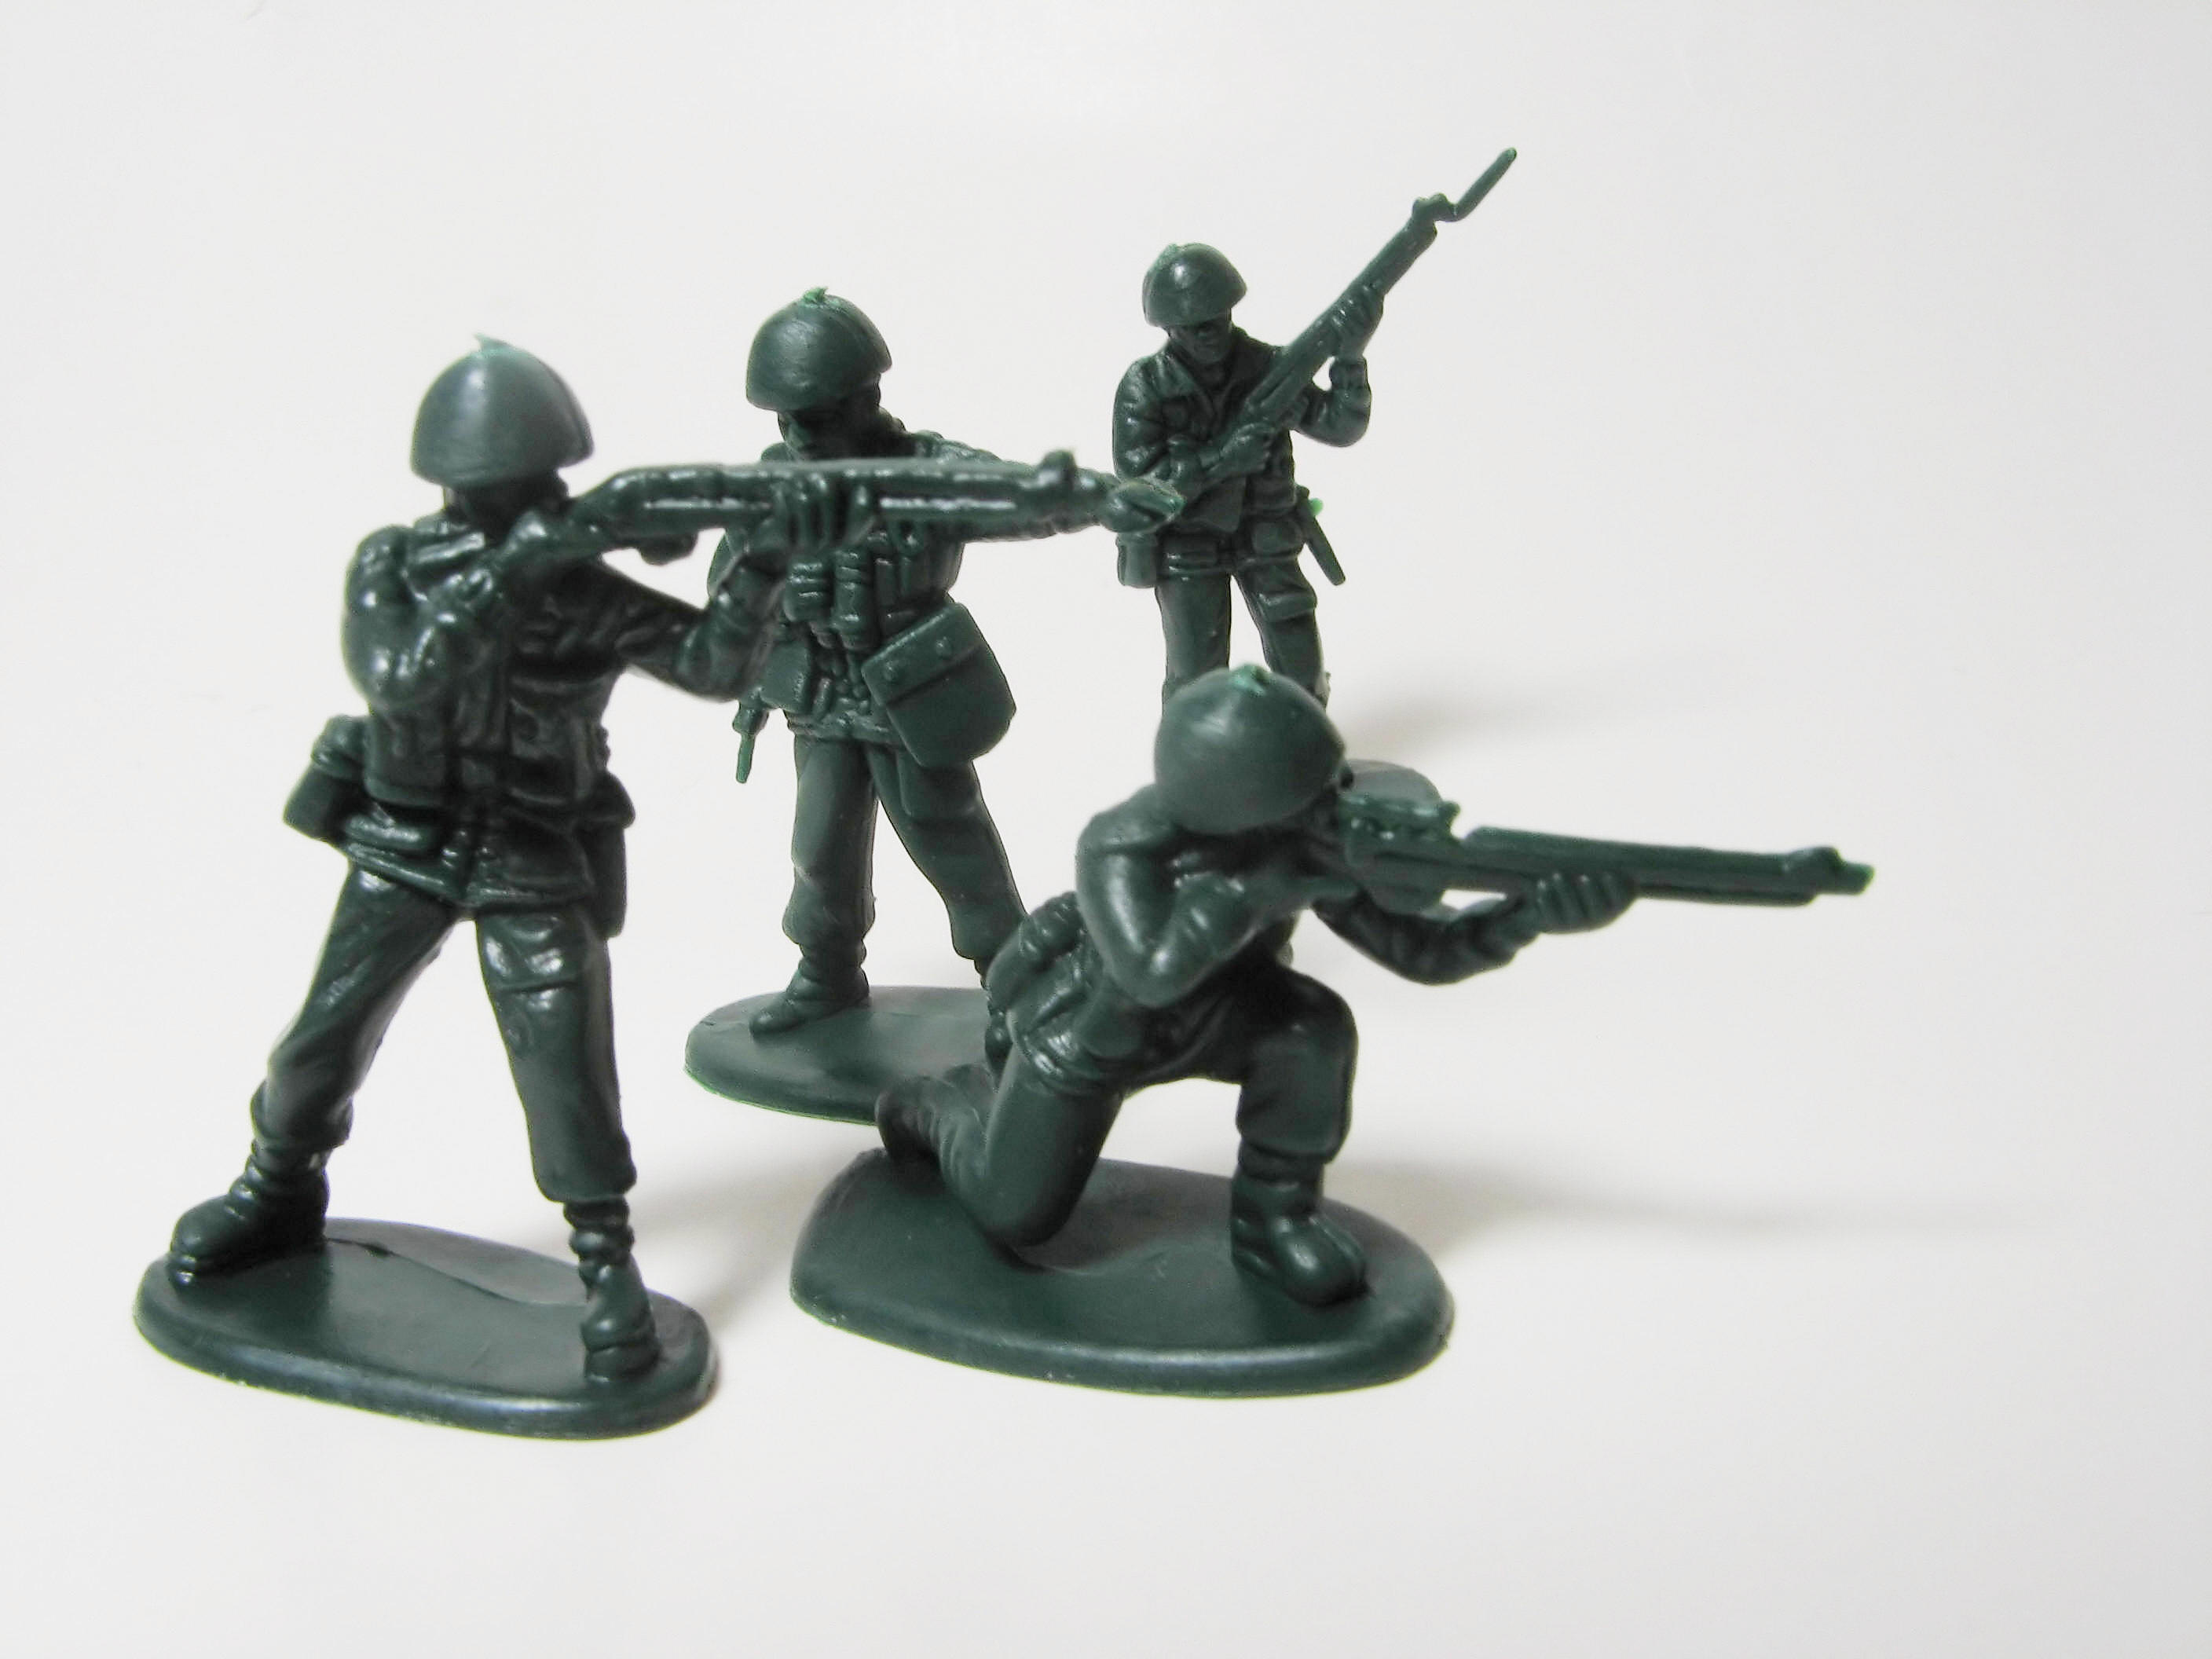 Play Toy Soldiers, around Real Soldiers\